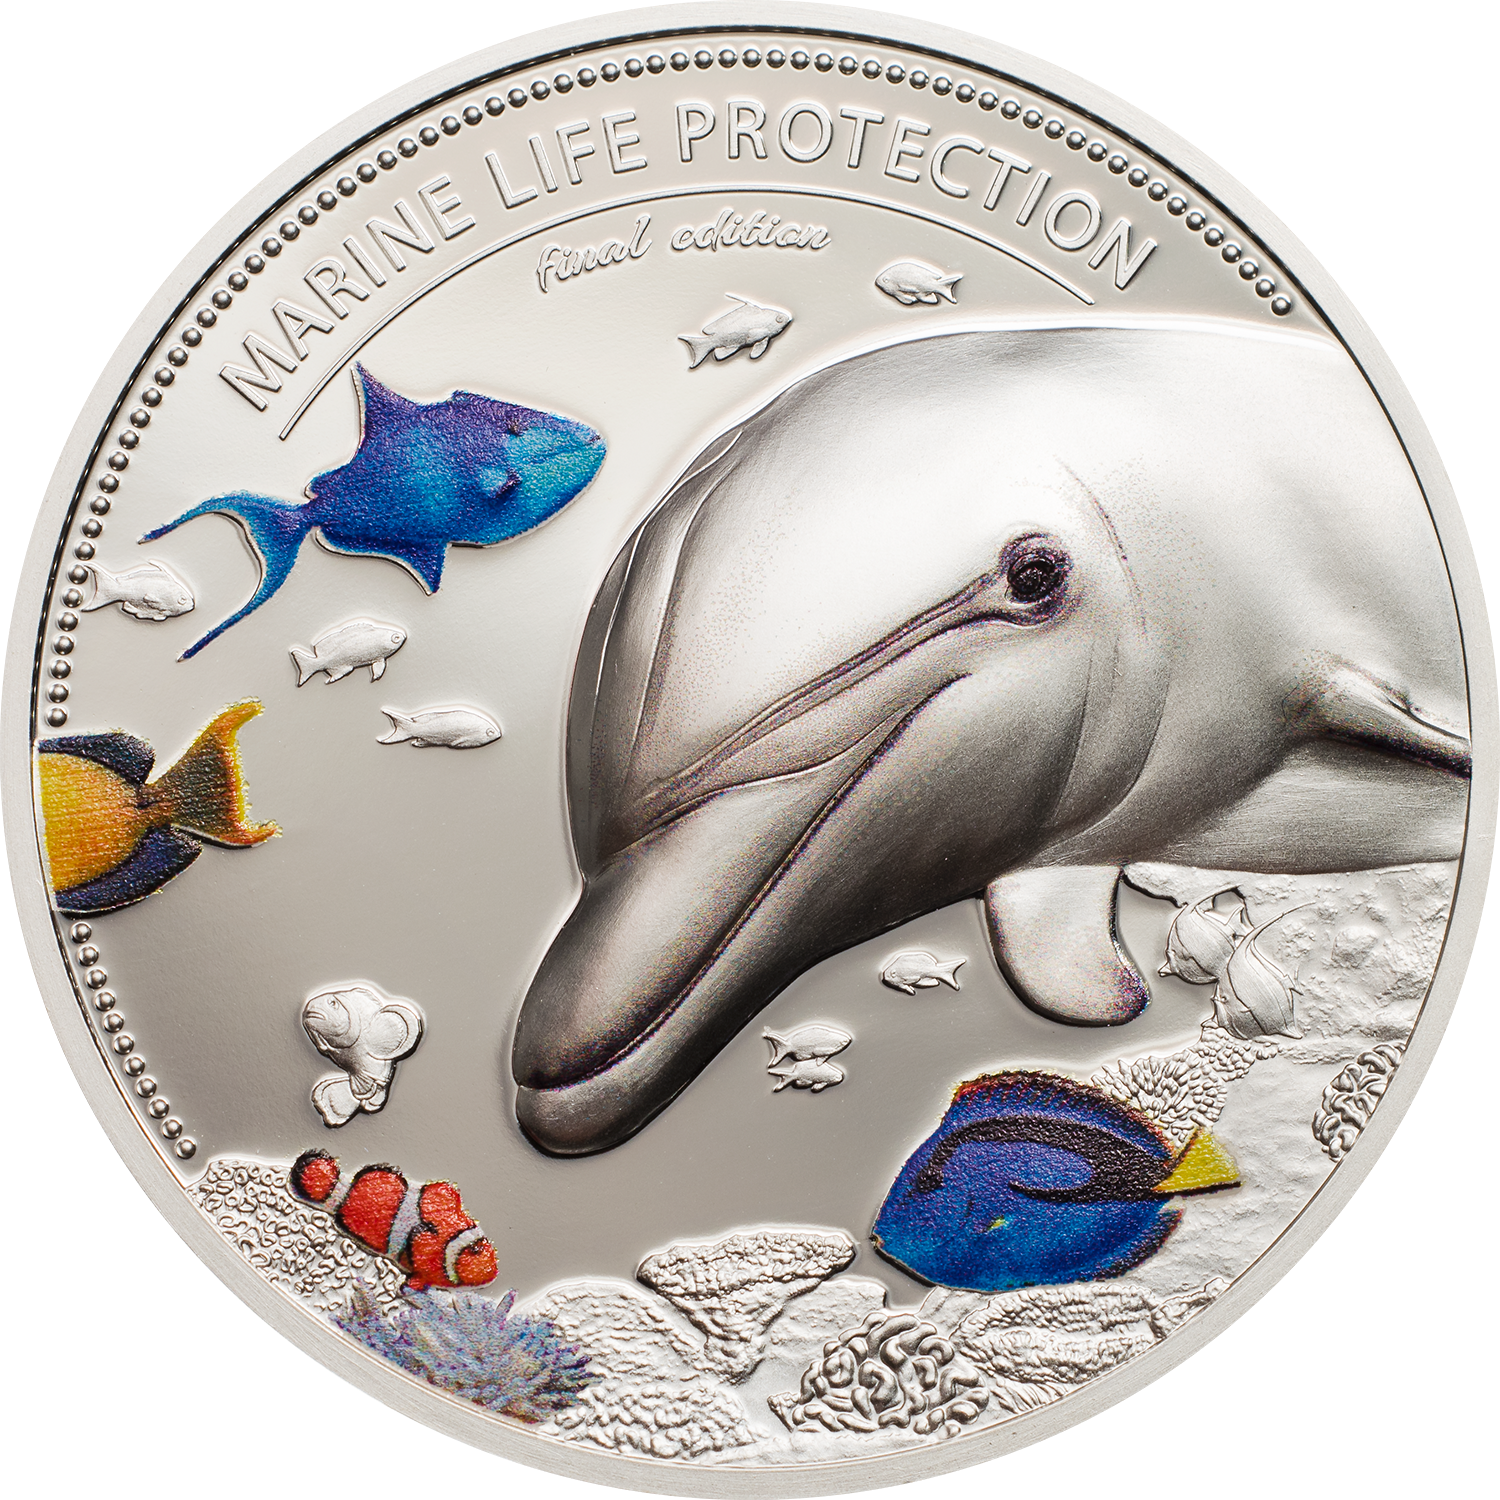 Four ounce piedfort silver coin set Marine Life Protection Dolphin and Sea Horse for Palau